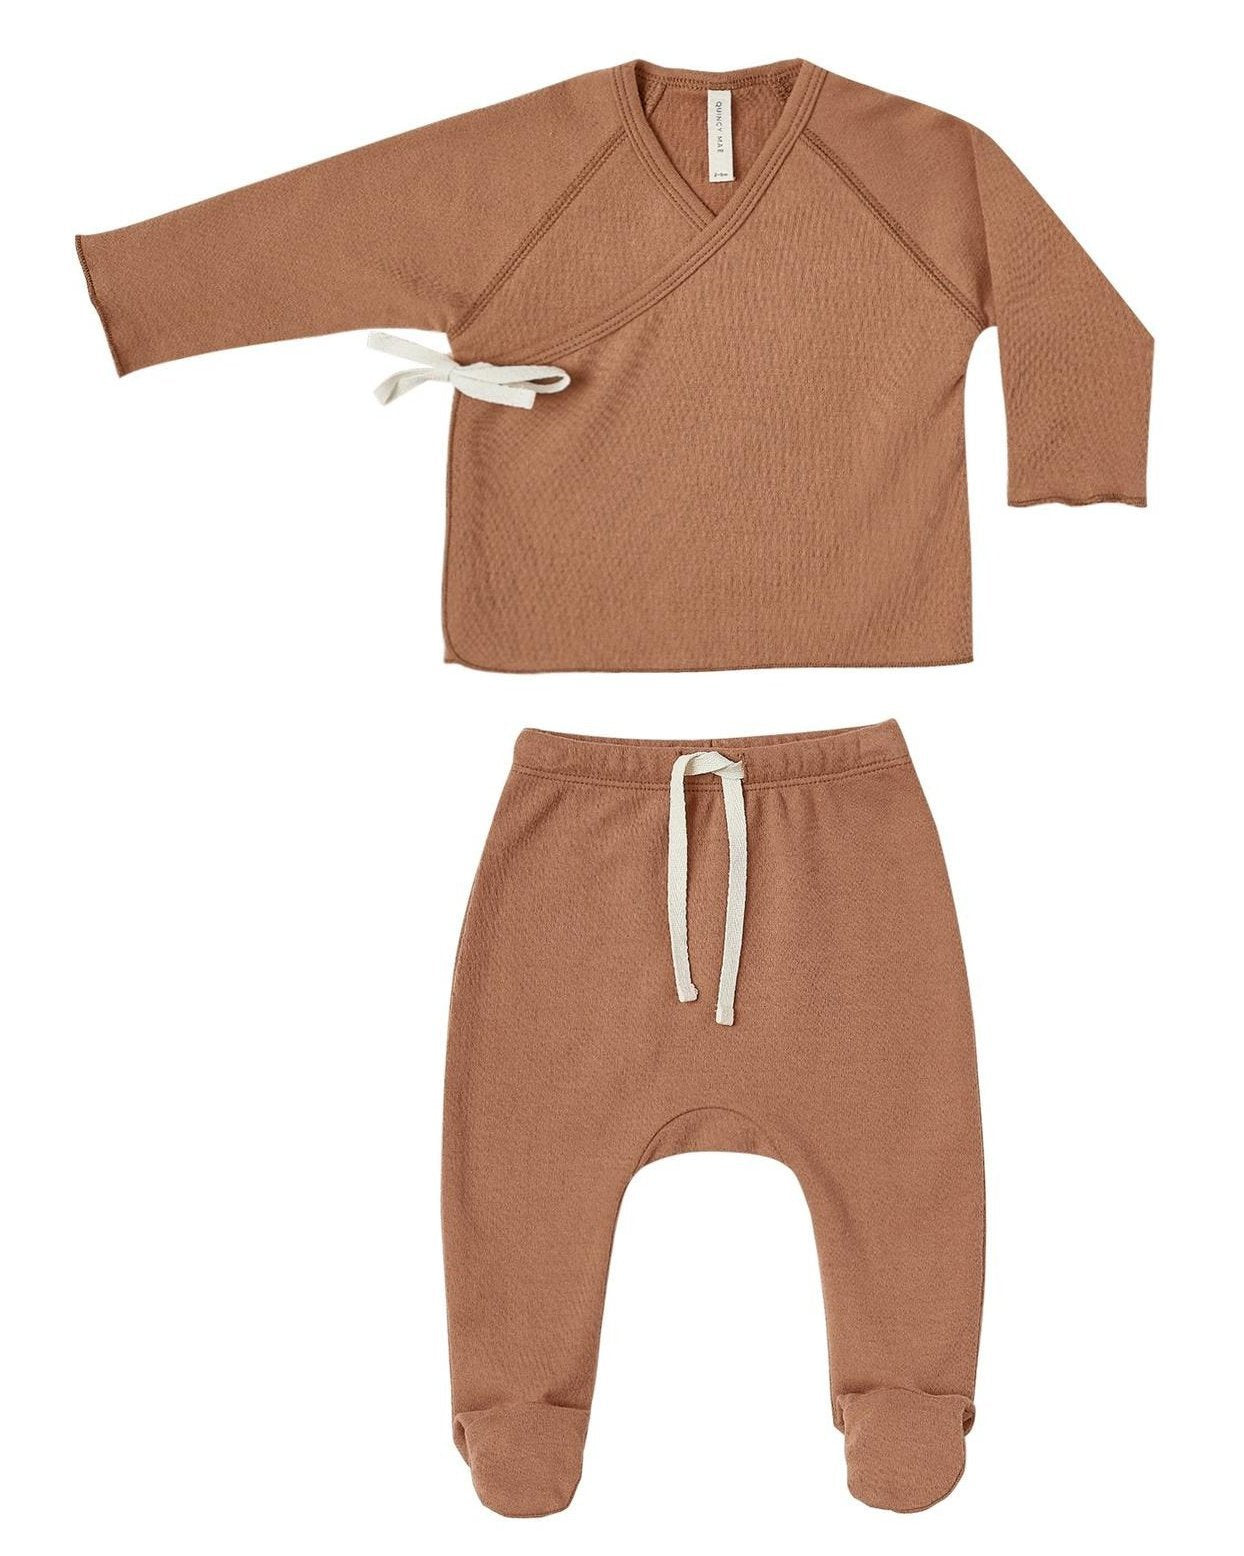 Little quincy mae baby girl kimono top + footed pant set in rust